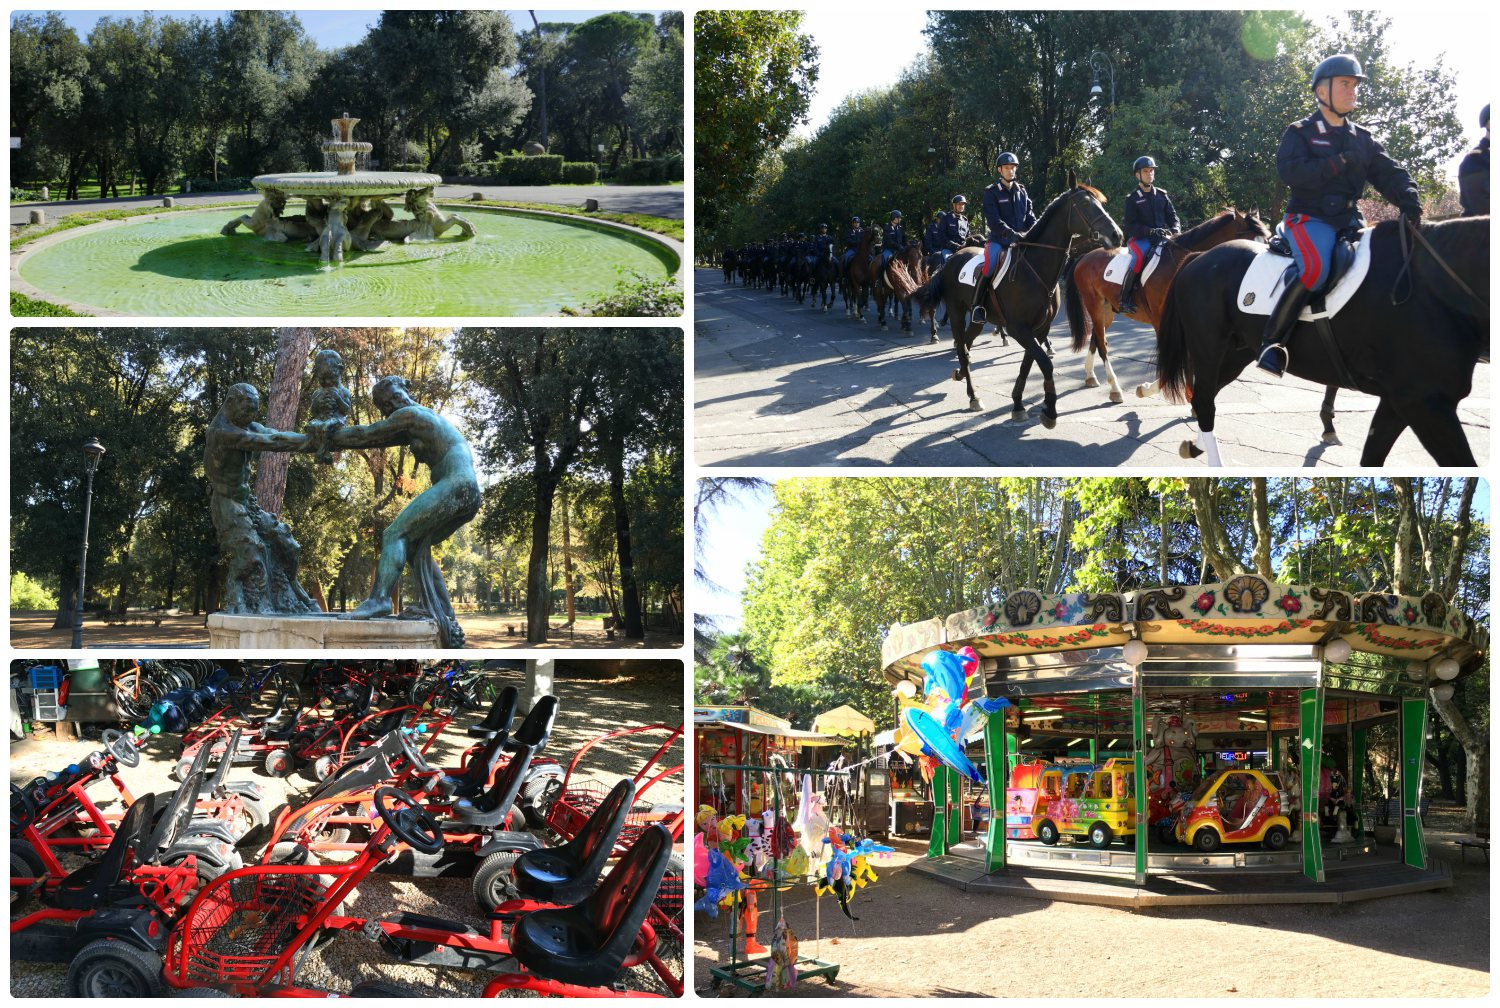 Villa Borghese Gardens in Rome, Italy is rather large, offering something fun for the whole family!